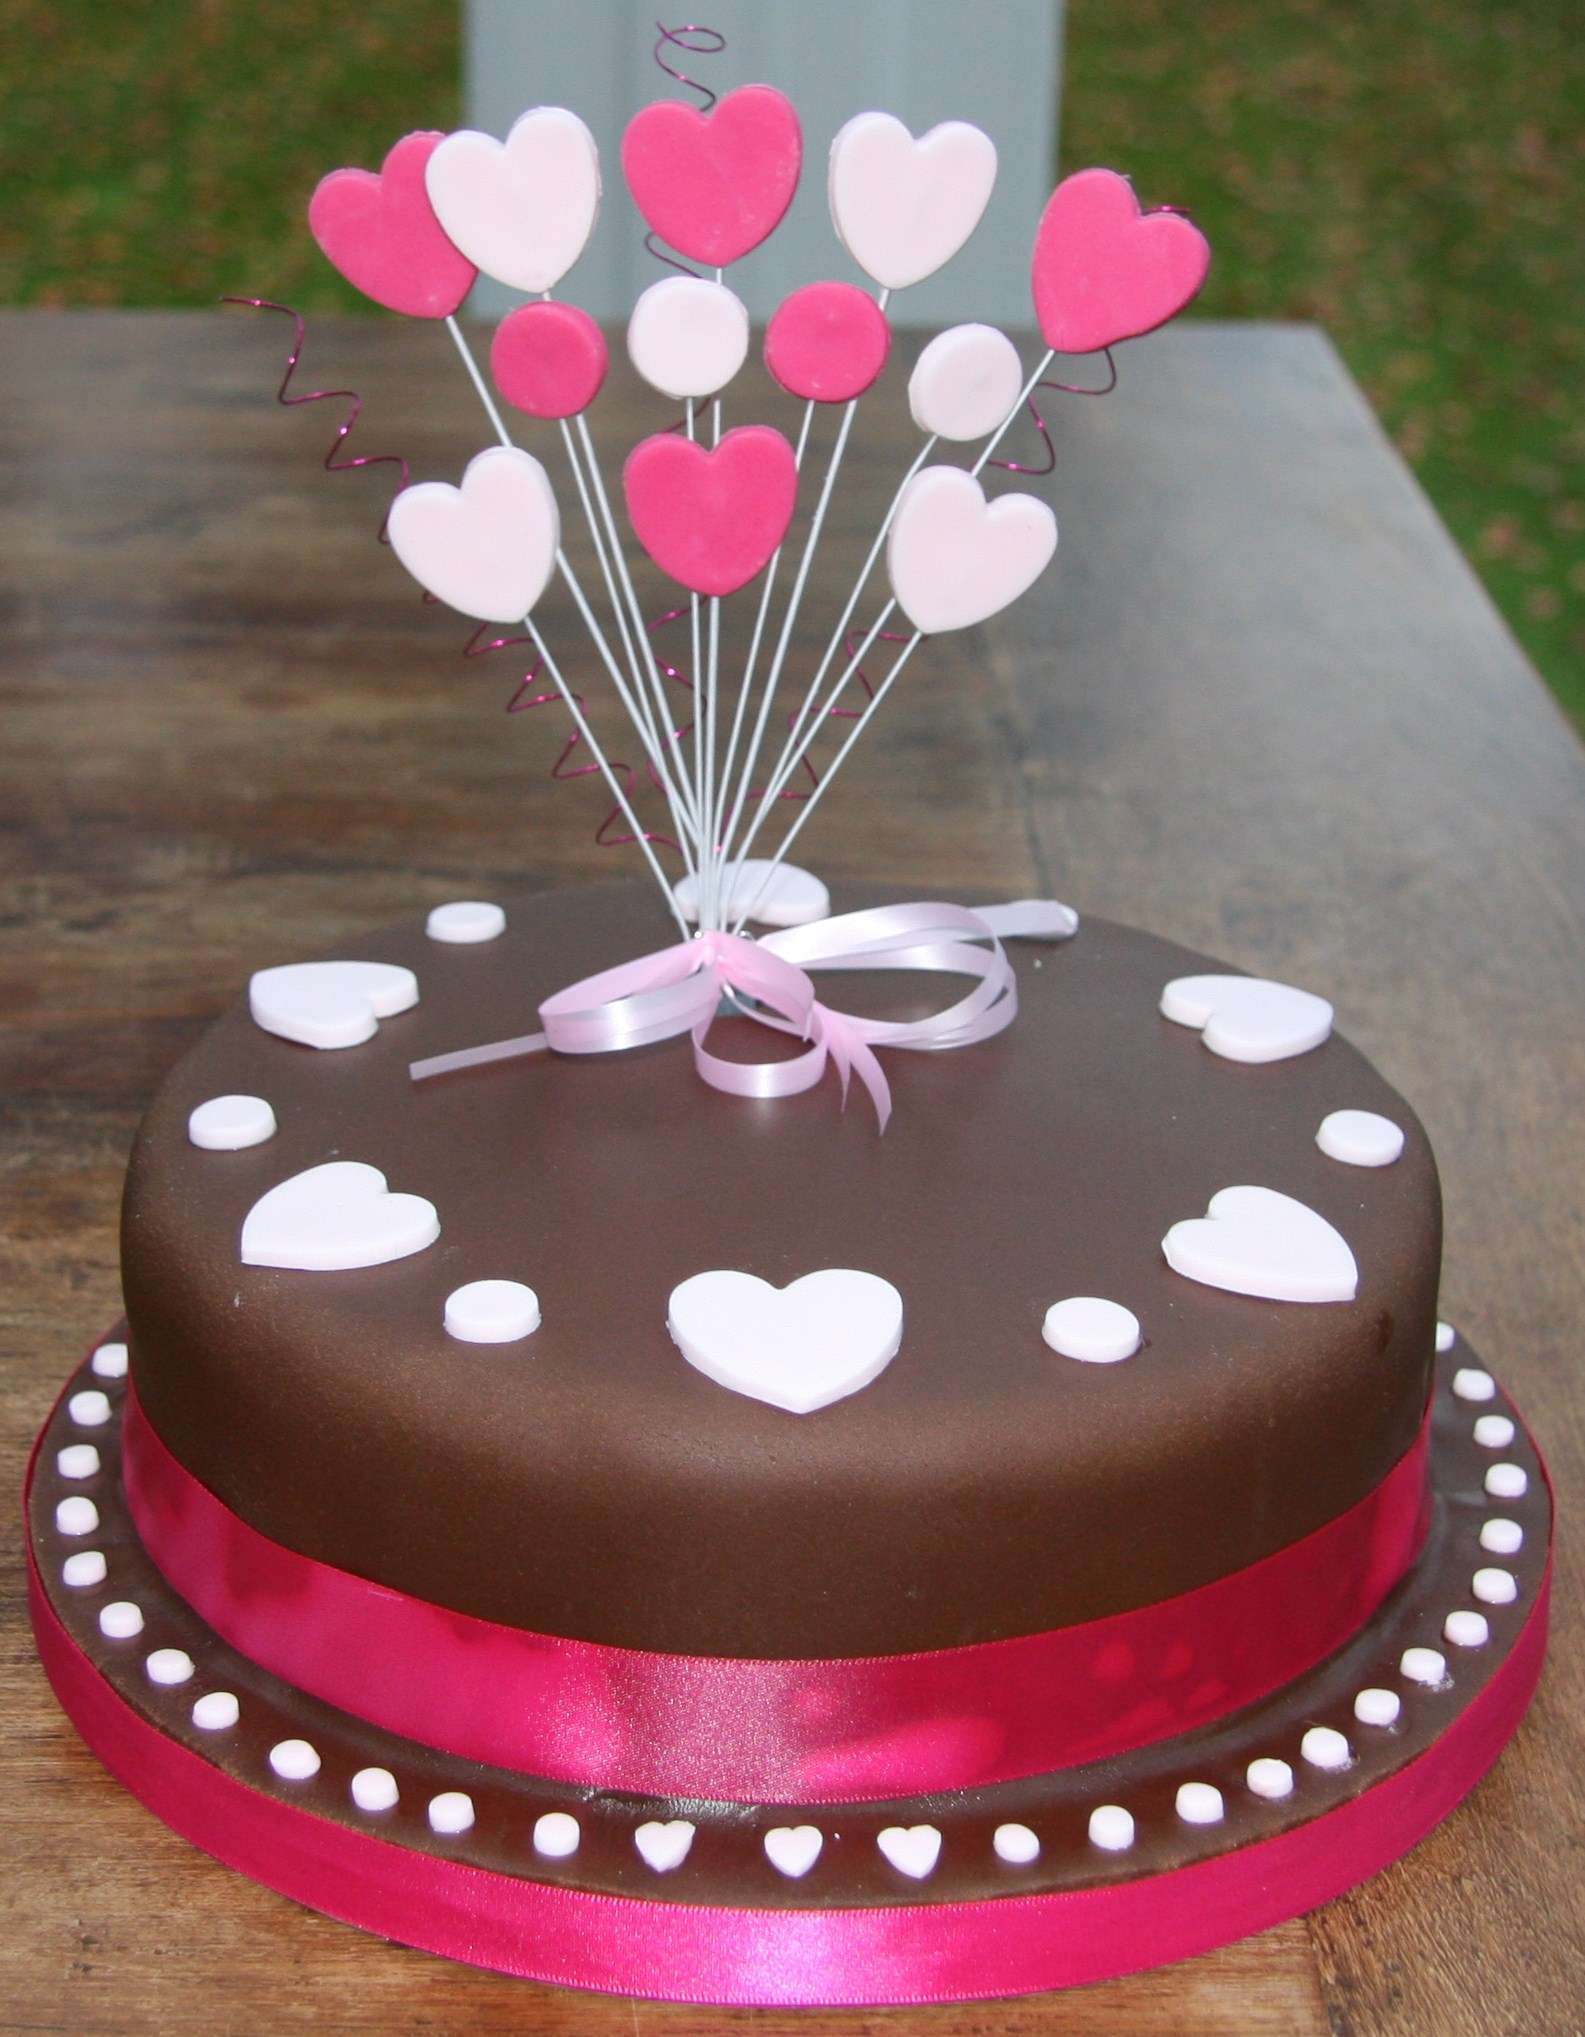 Chocolate Birthday Cake with Hearts - lovinghomemade